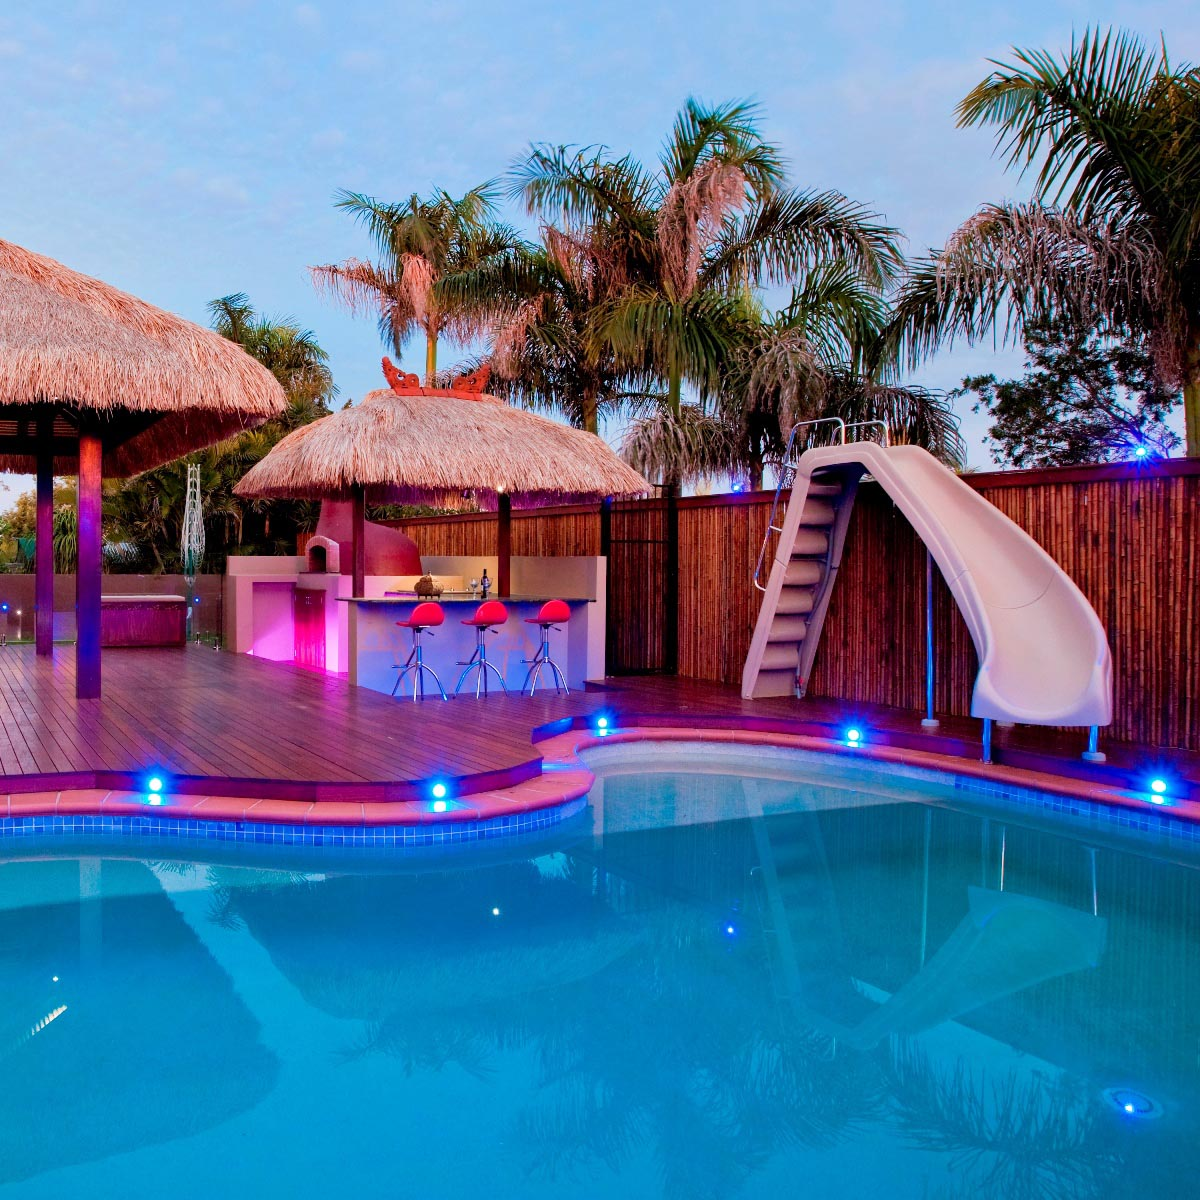 Beauty of a small swimming pool backyard design ideas Swimming pools in liverpool with slides